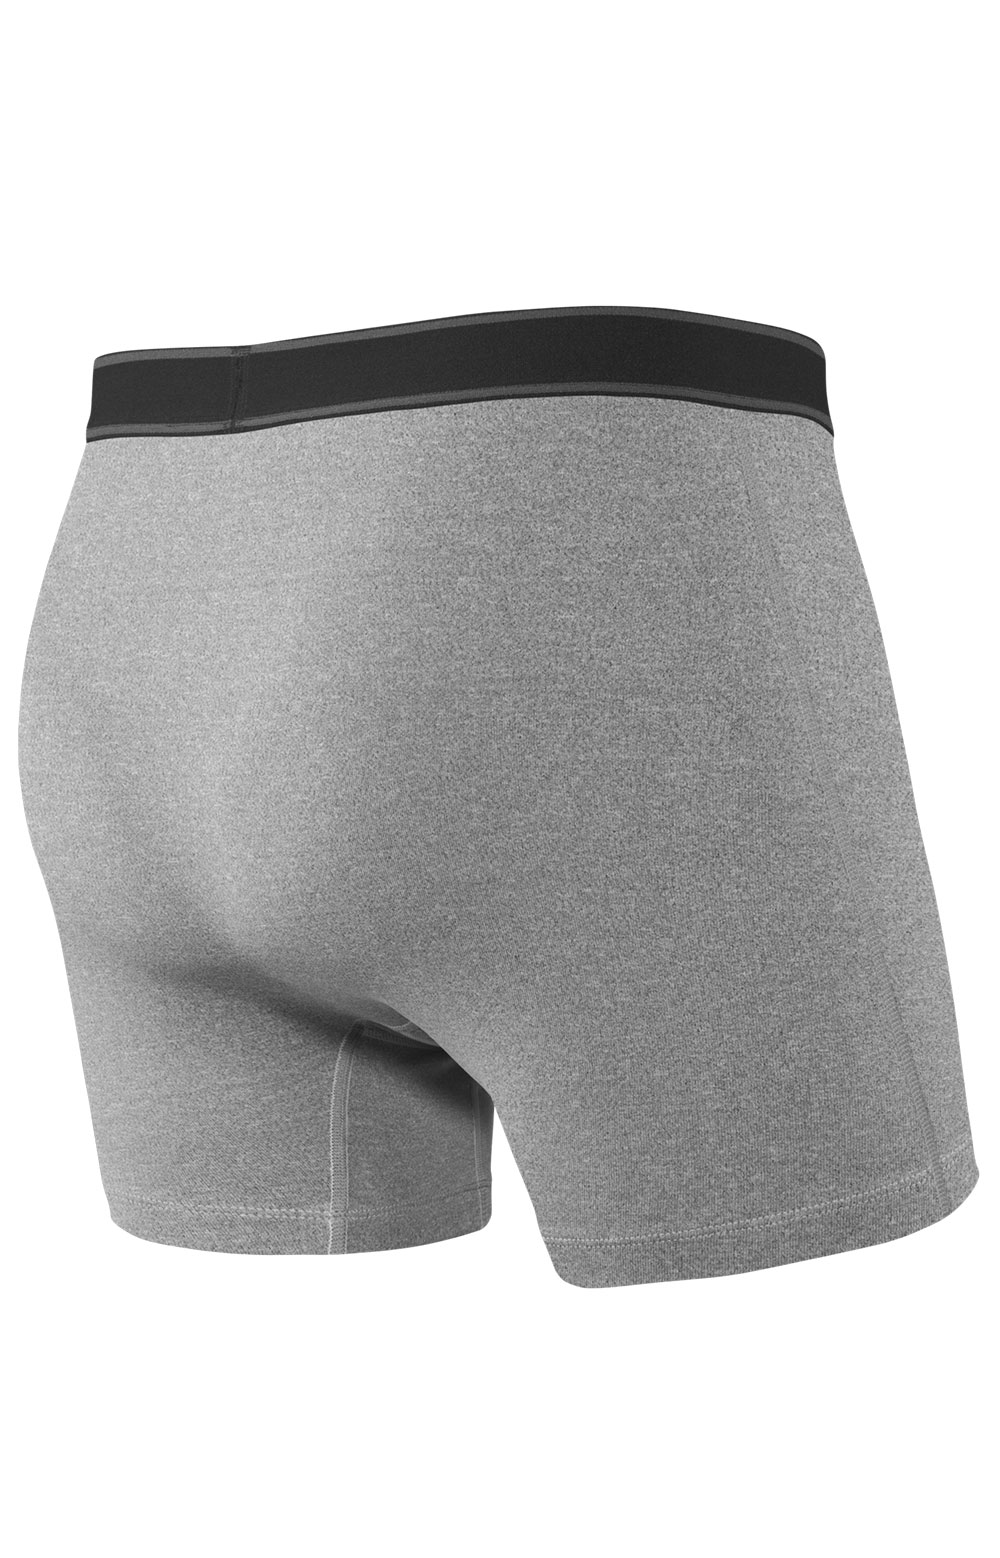 Daytripper Boxer Brief Fly - Grey Heather  3